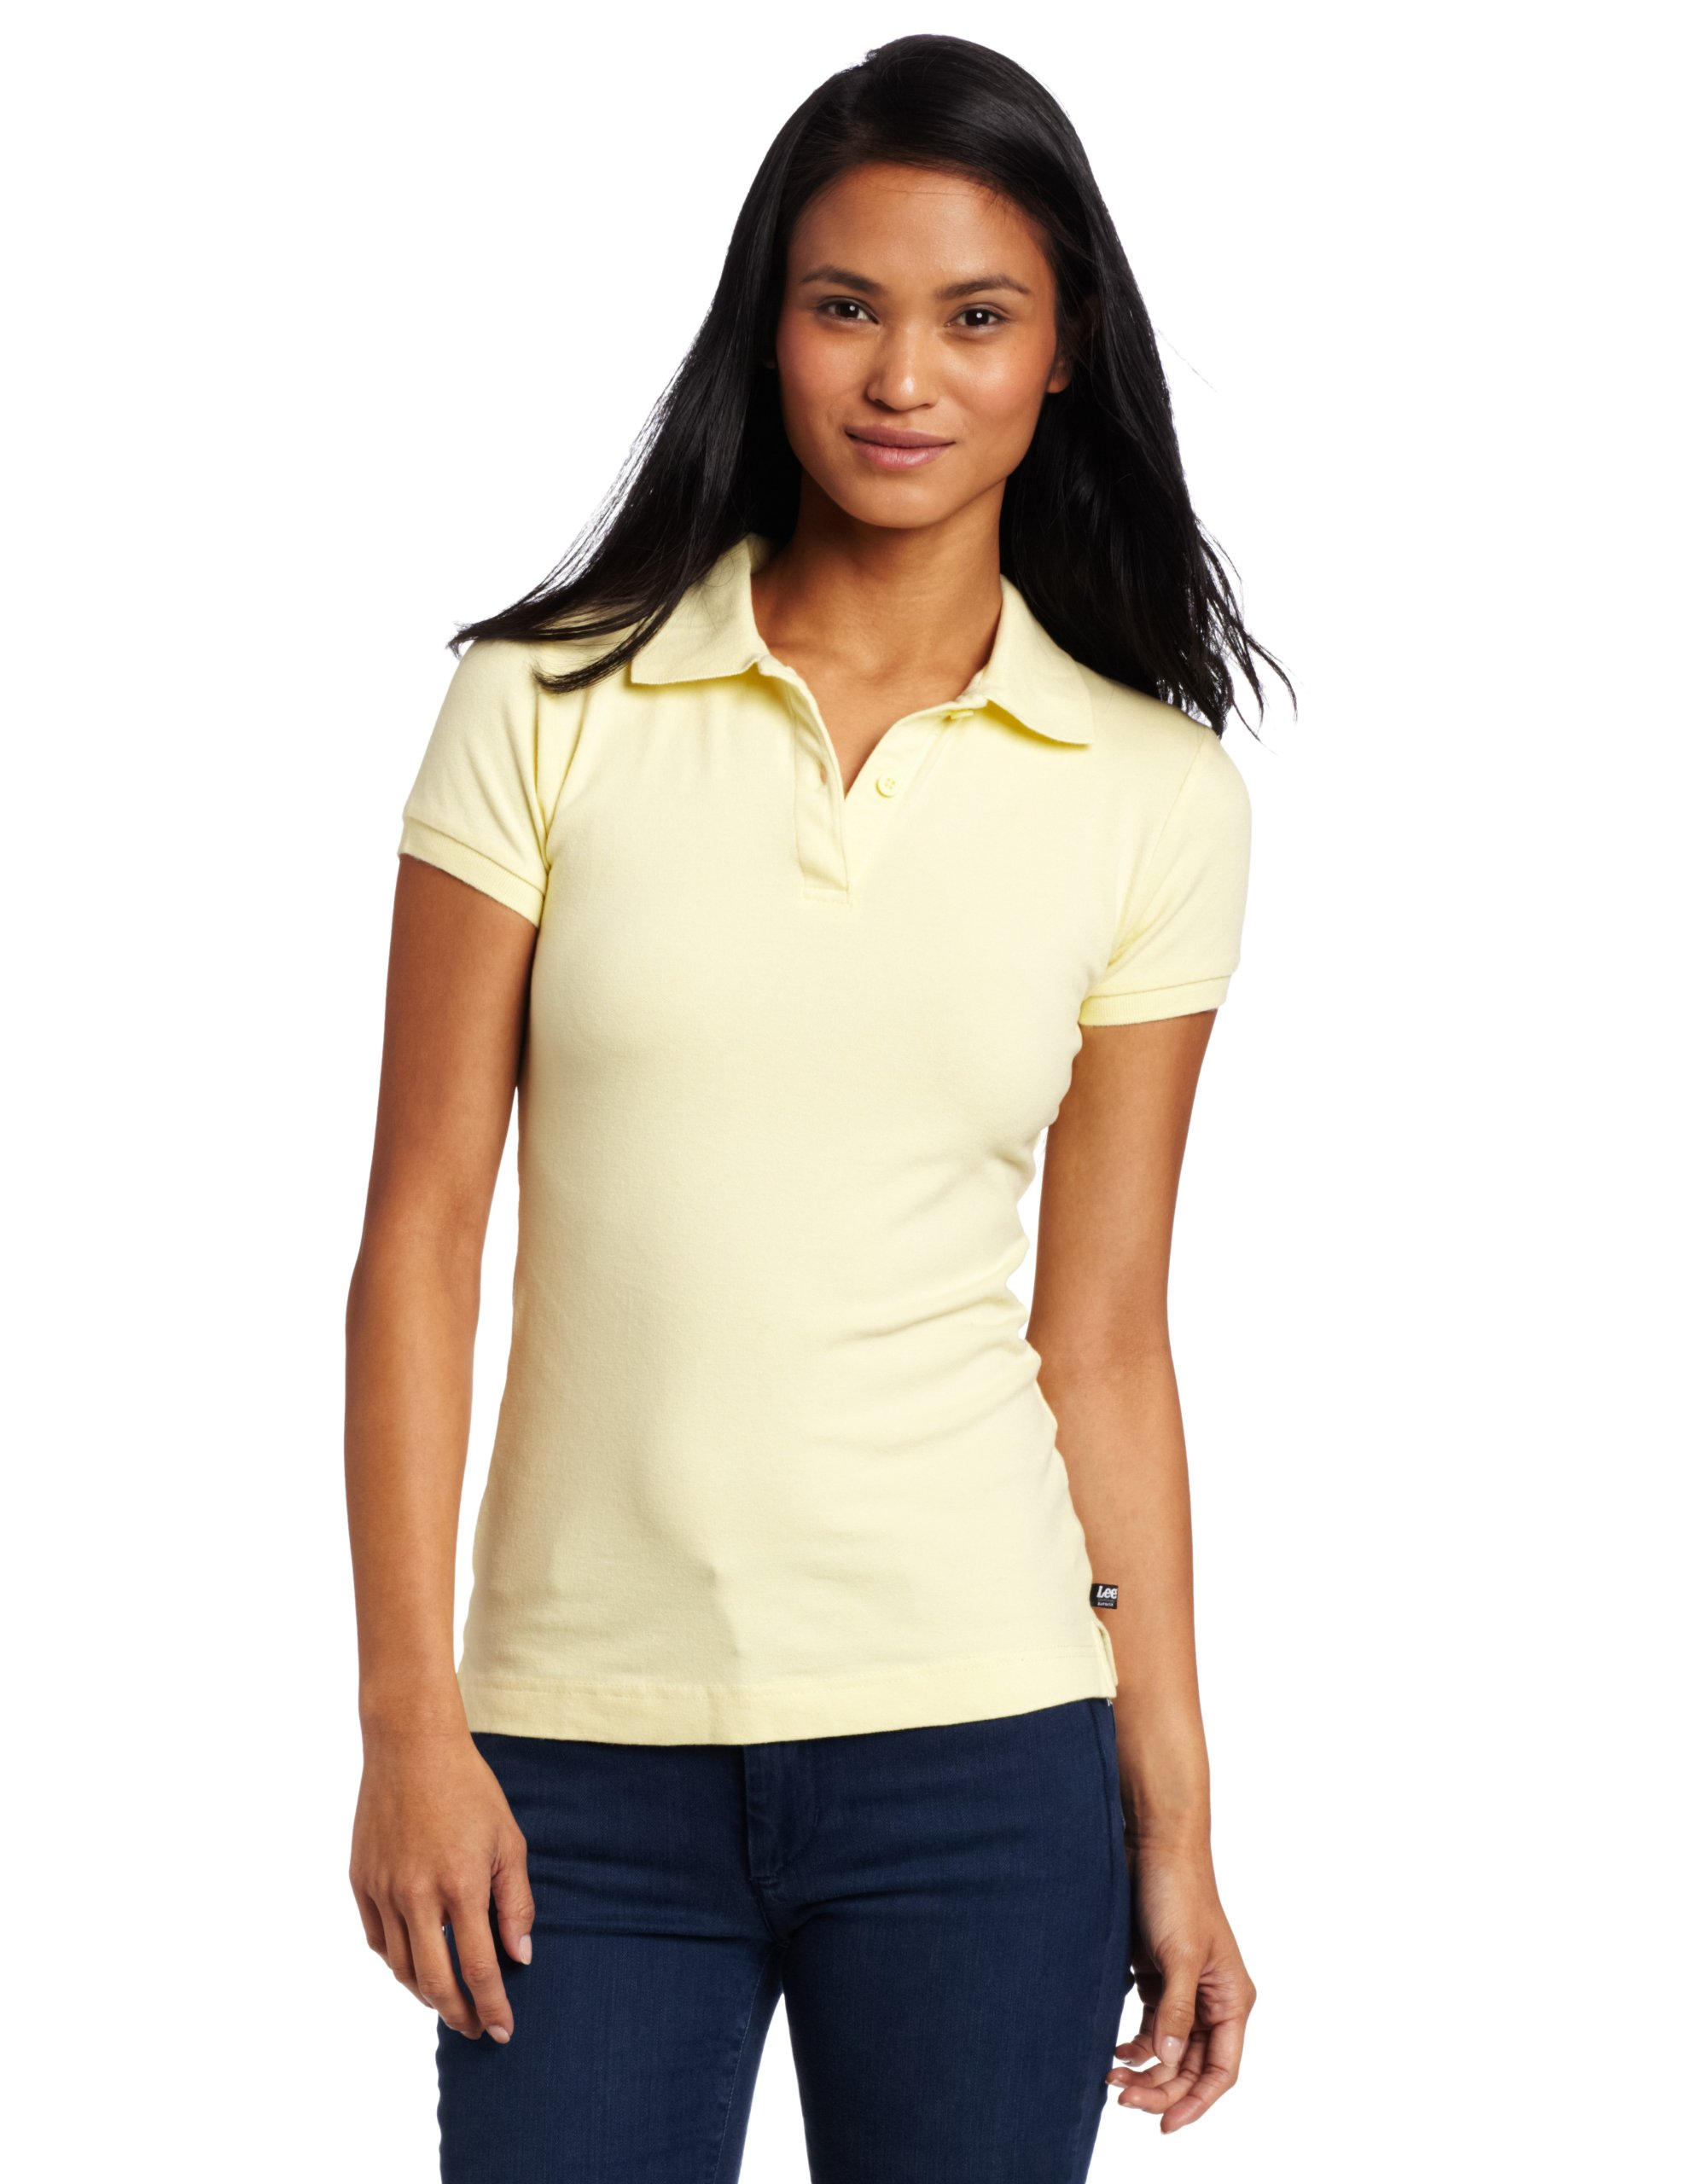 LEE Uniforms Juniors Stretch Pique Polo, Yellow, Medium